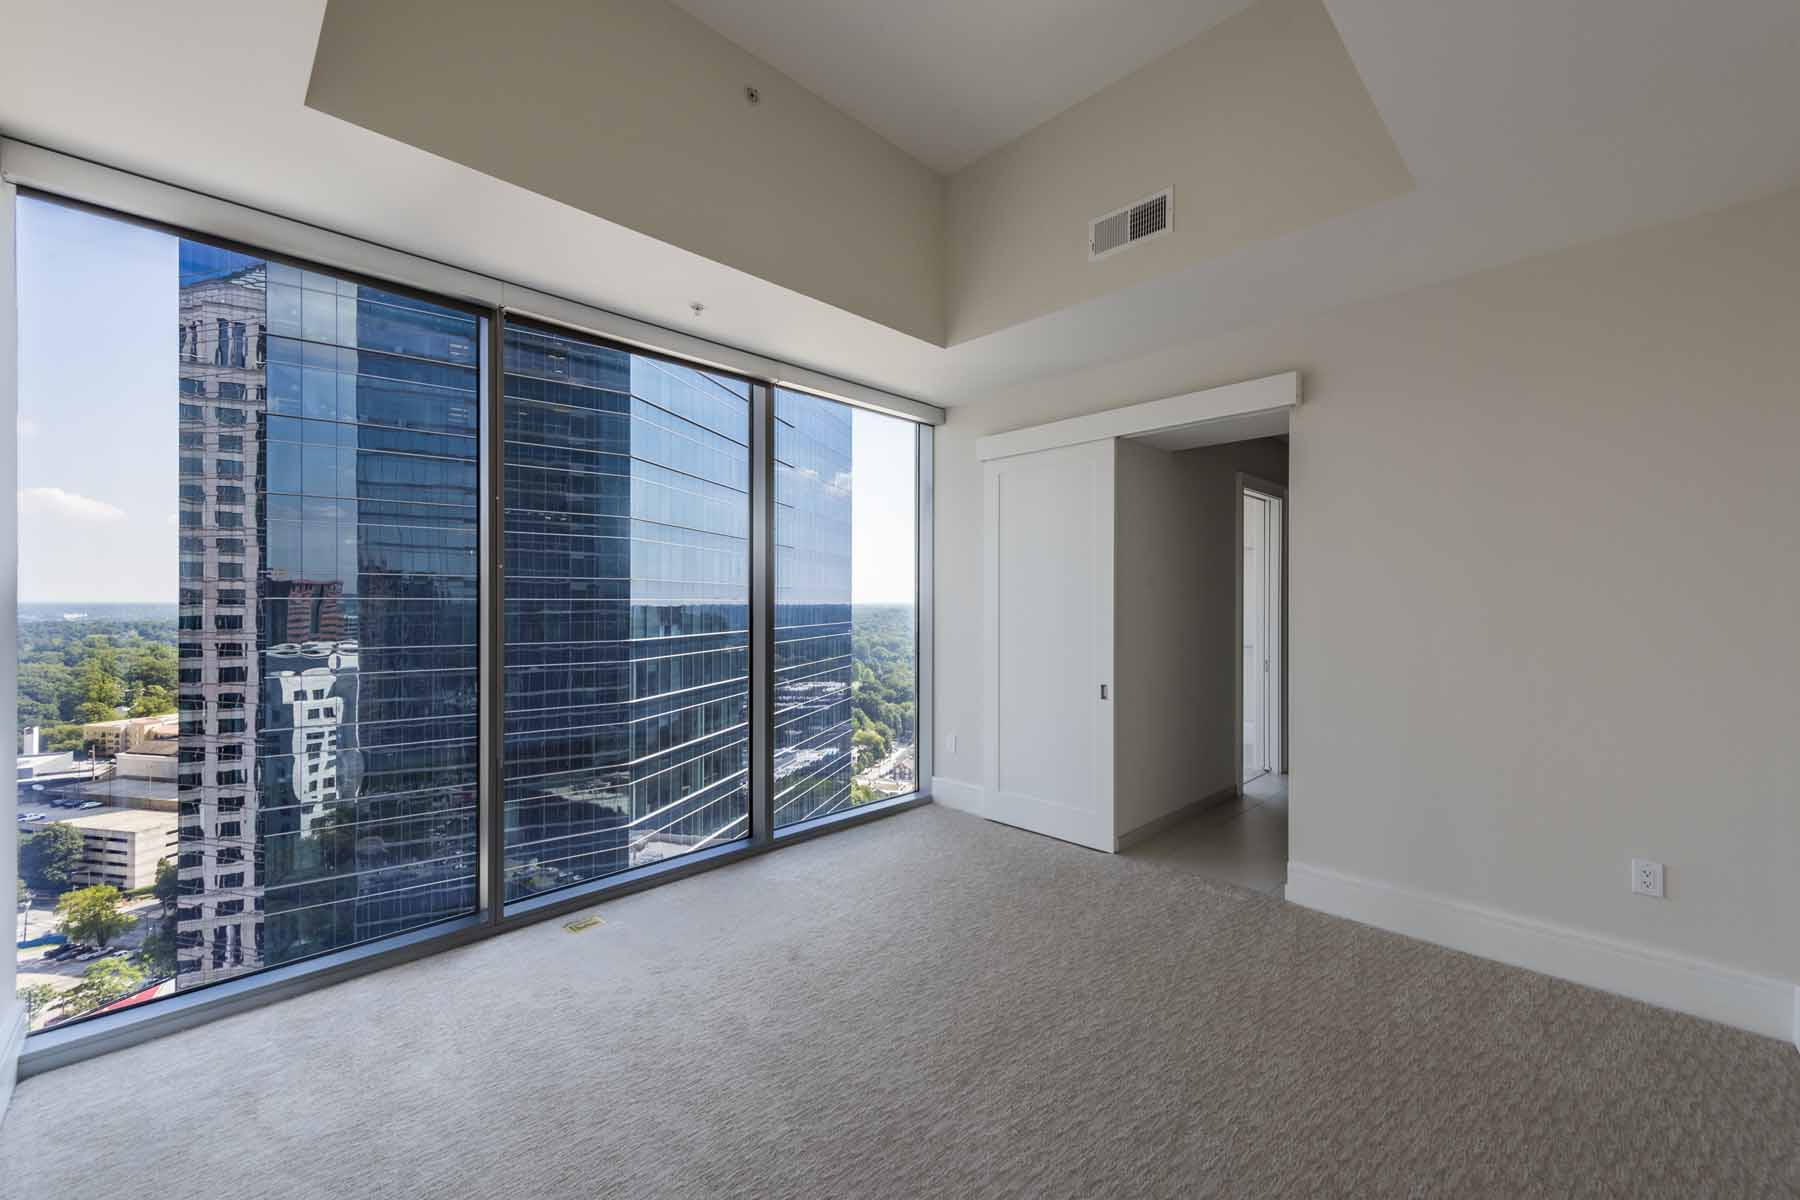 Kat Mülkiyeti için Satış at Two Bedroom Condo with Flex Space in Midtown Atlanta 1065 Peachtree Street NE Unit 2702 Atlanta, Georgia, 30309 Amerika Birleşik Devletleri